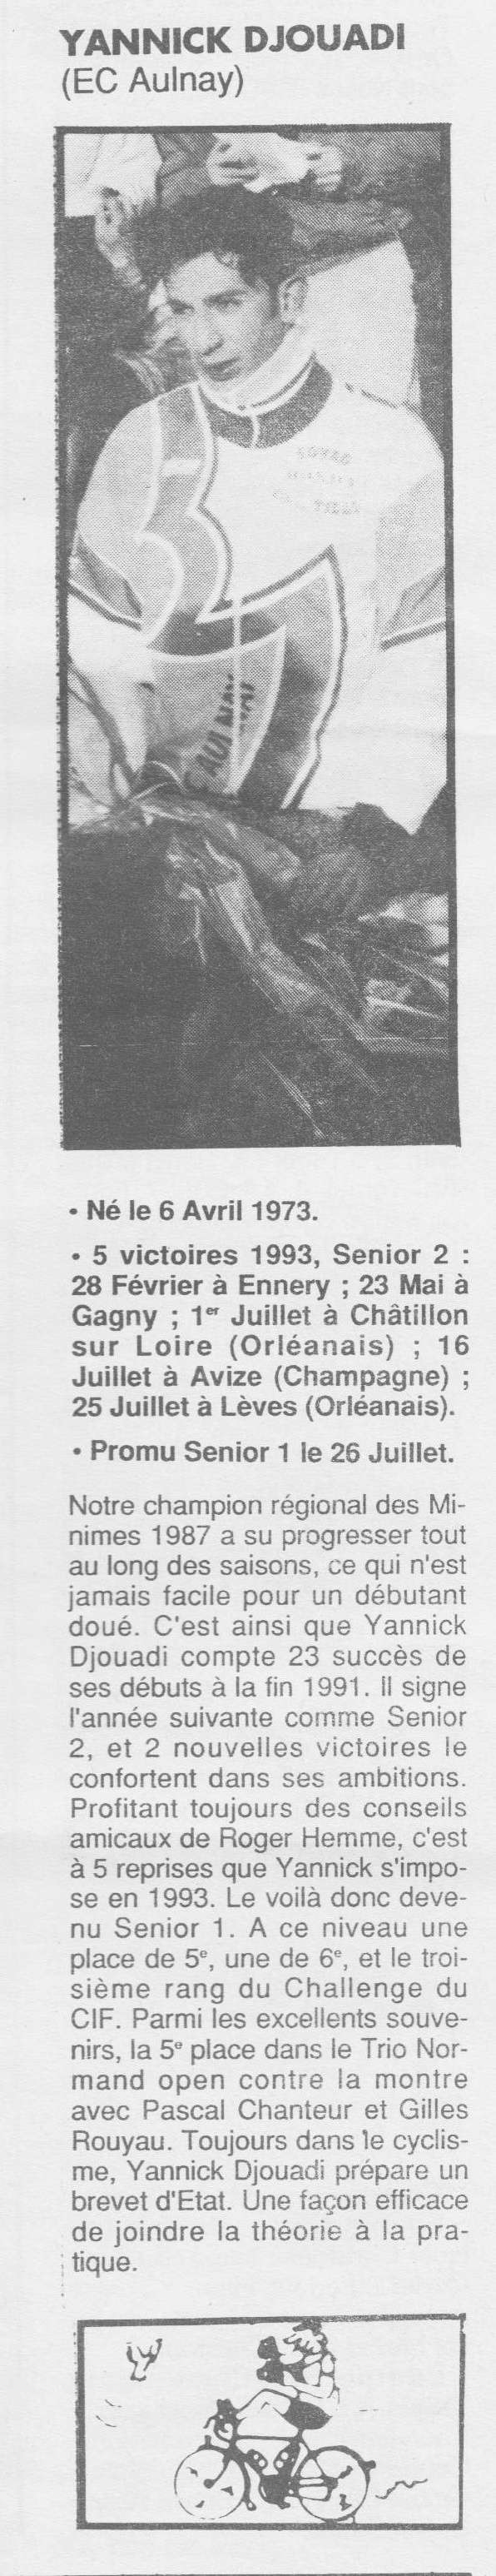 Coureurs et Clubs de Octobre 1993 à Septembre 1996 - Page 2 00930